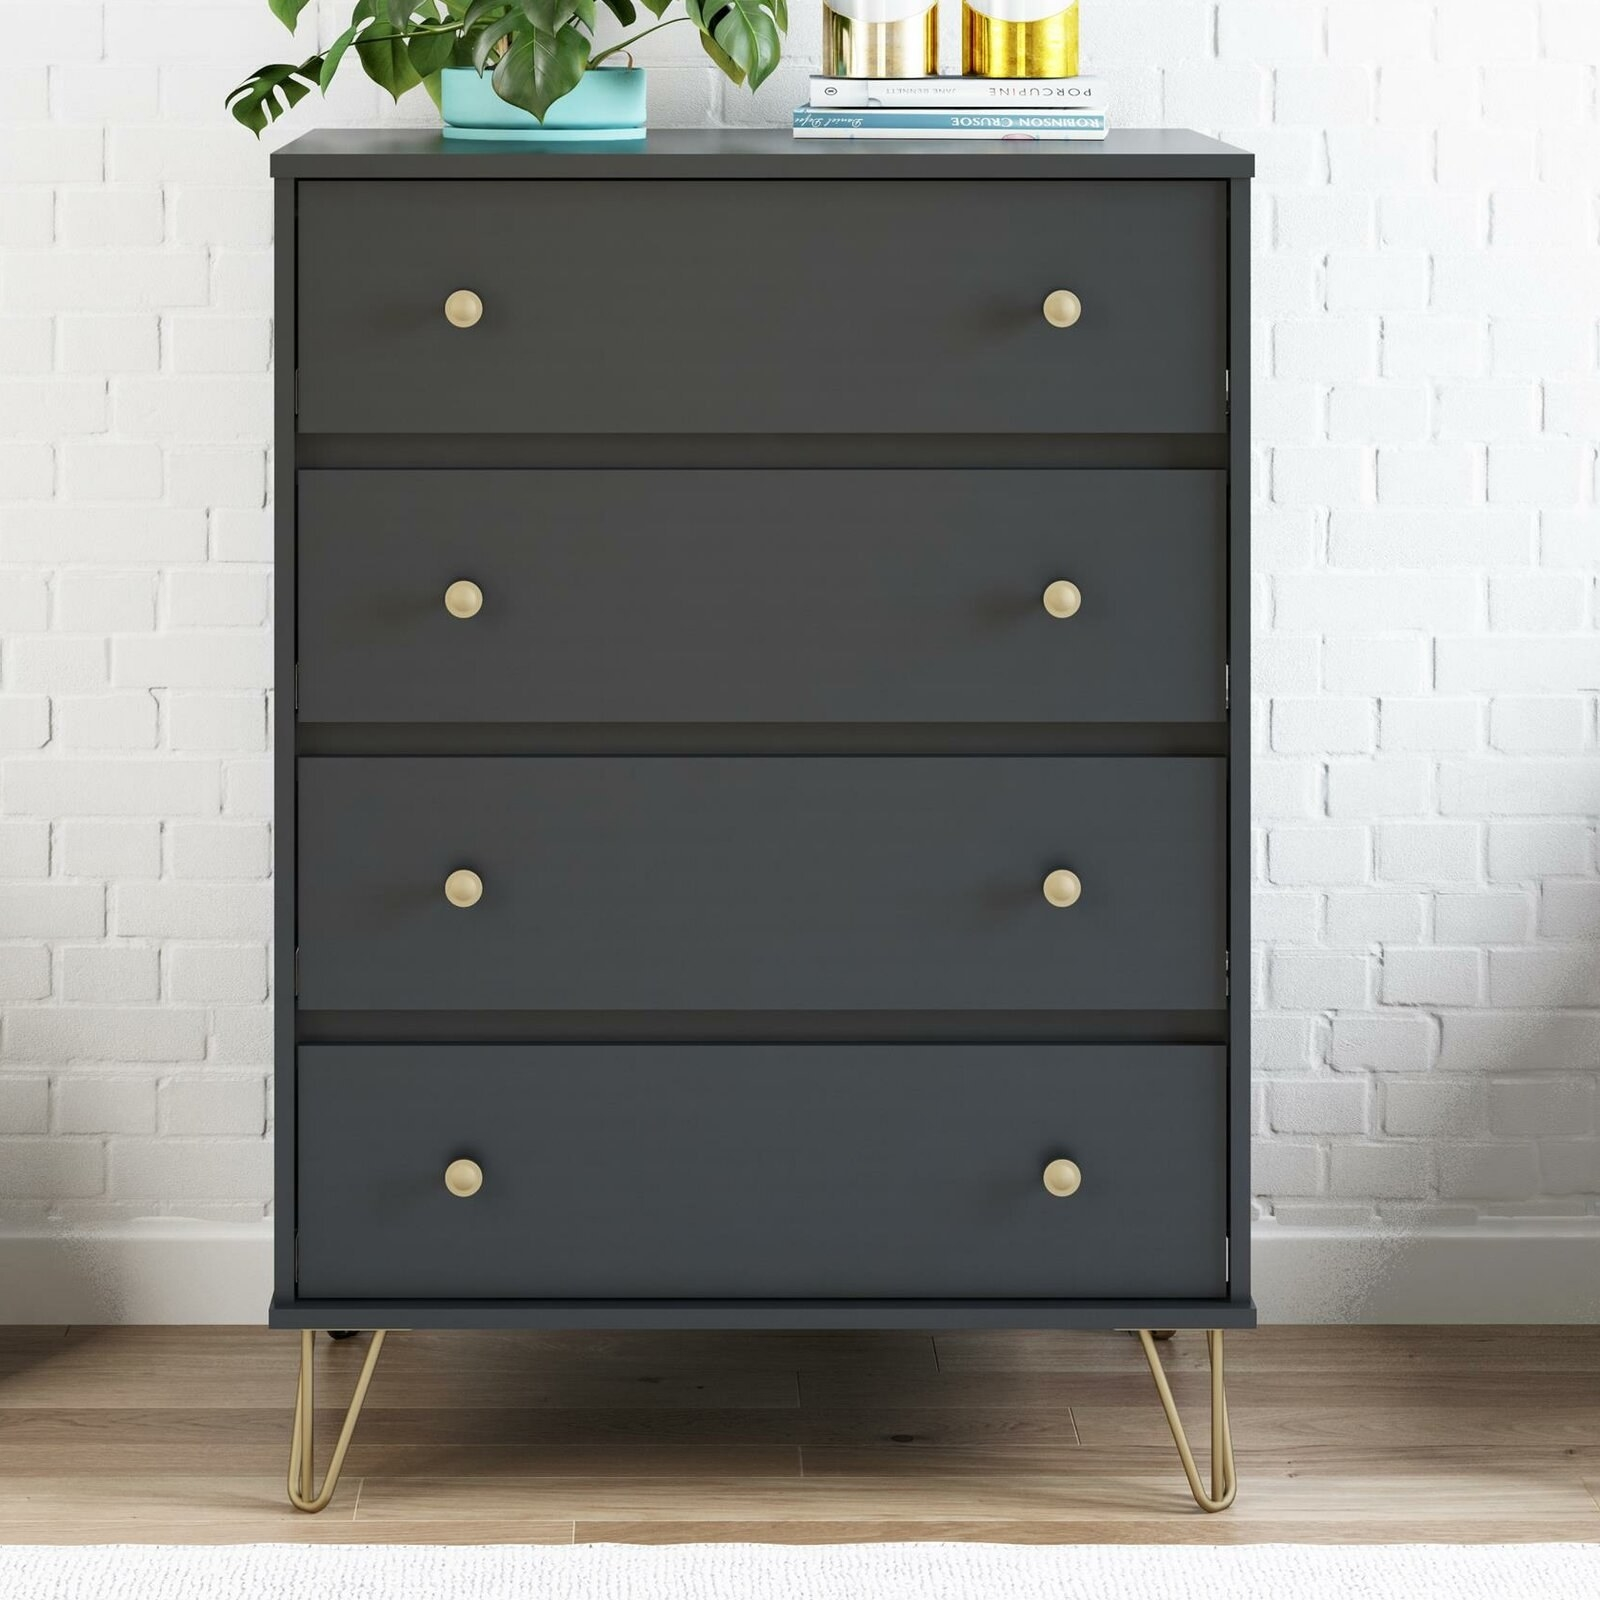 Black particle board dresser with gold legs and hardware